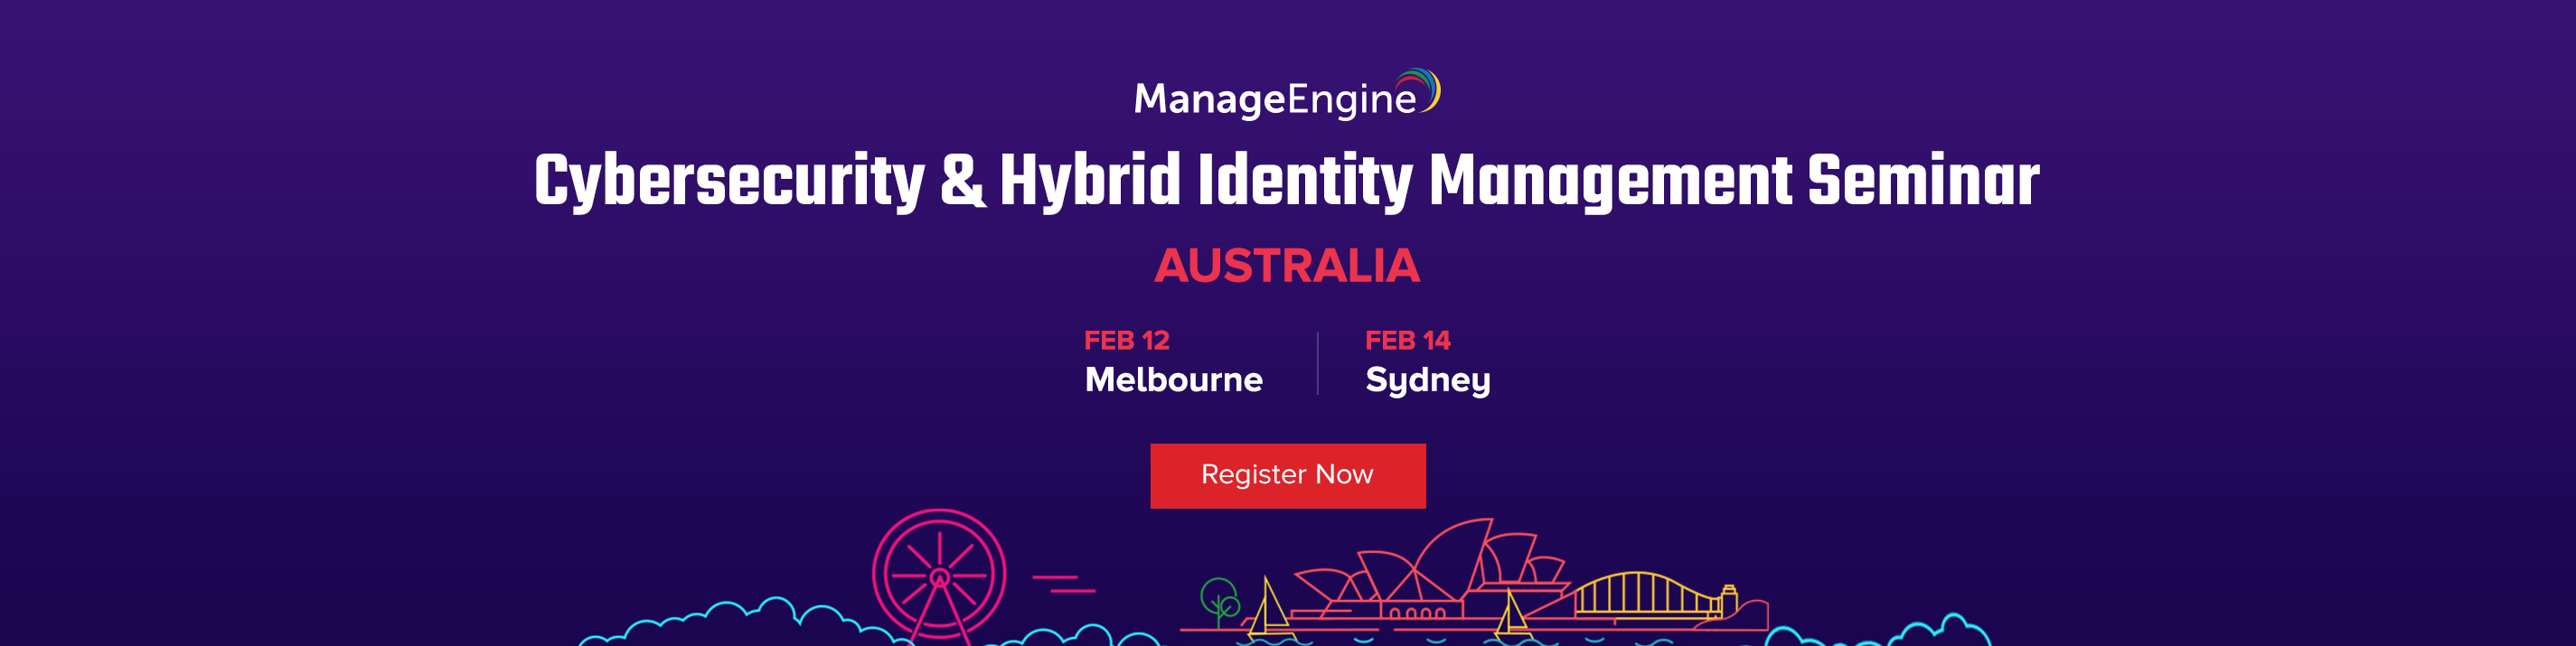 Cybersecurity & Hybrid Identity Management Seminar- 2019